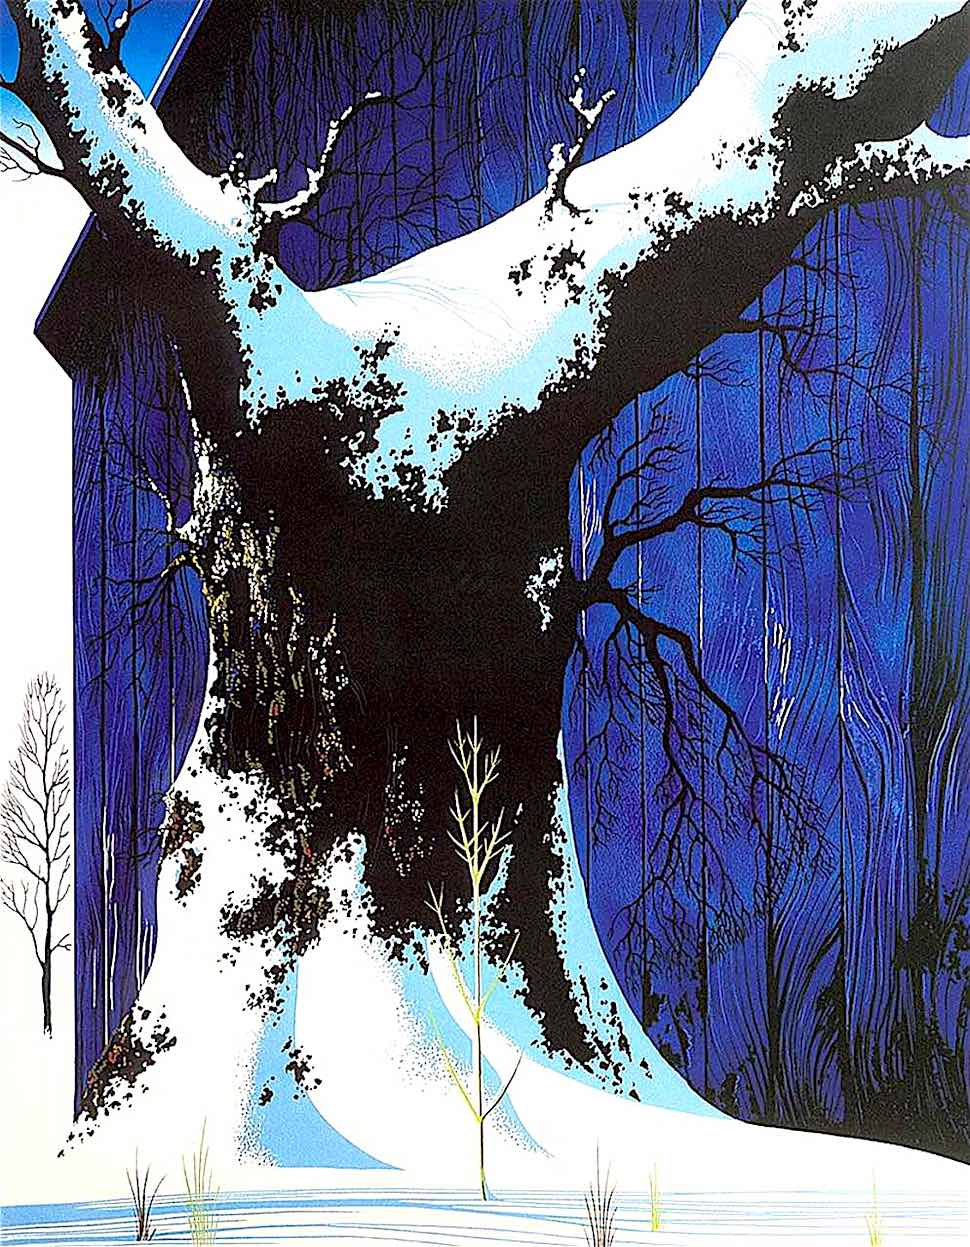 Eyvind Earle, giant tree with blue barn in winter